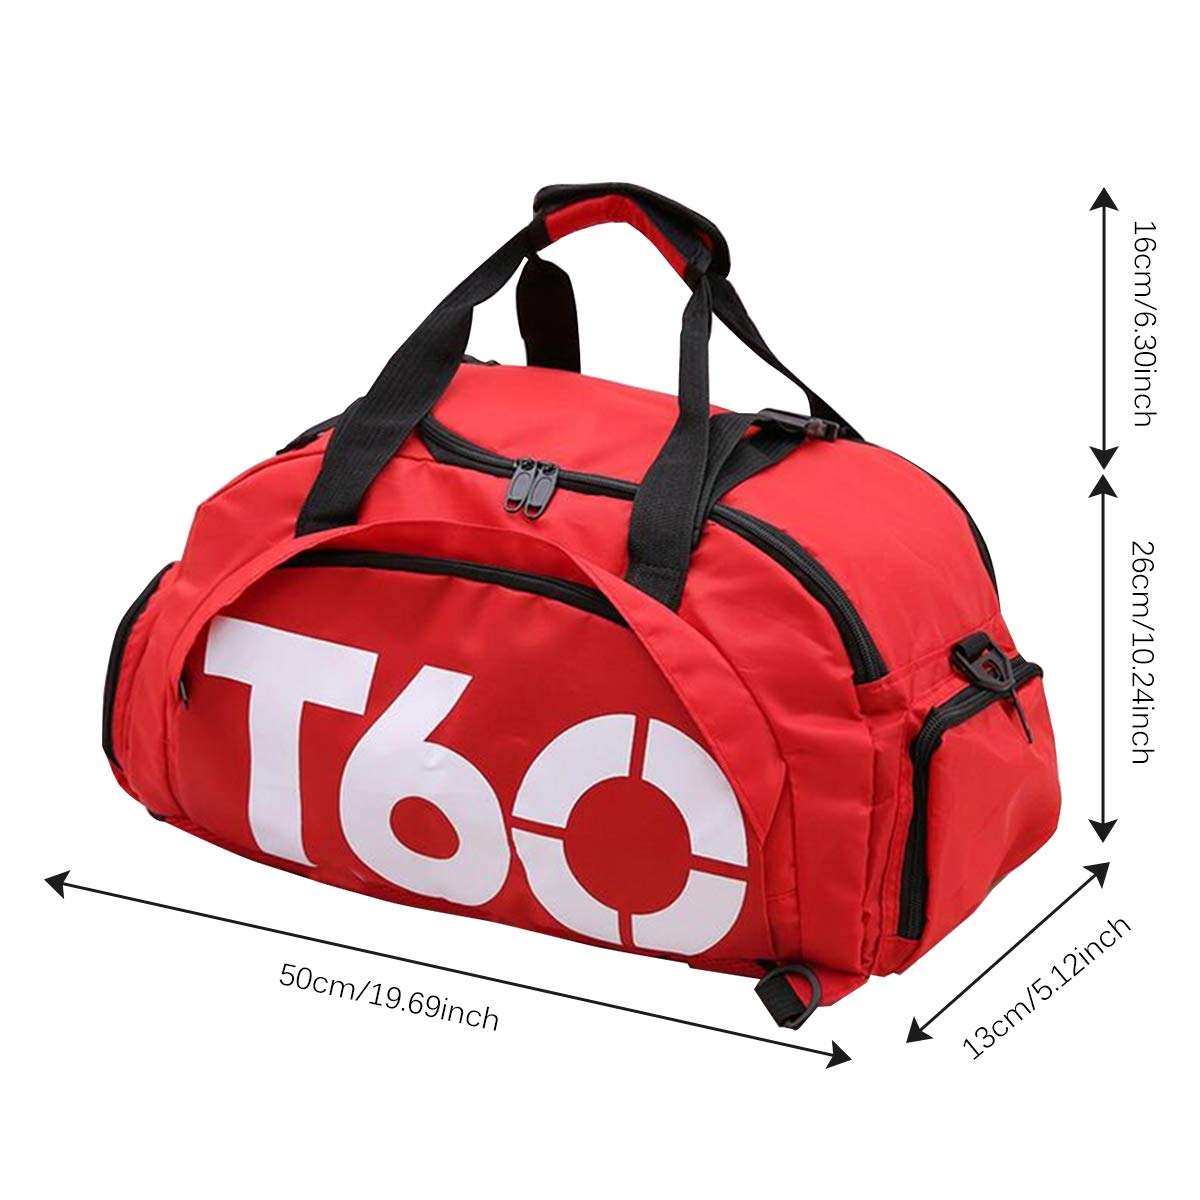 c6520122b9f Amazon.com | 3-Way Travel Duffel Bag Backpack Travel Luggage Gym Sports Bag  Shoe Compartment Men Women Red 19.6''x5.1''x10.2'' | Sports Duffels